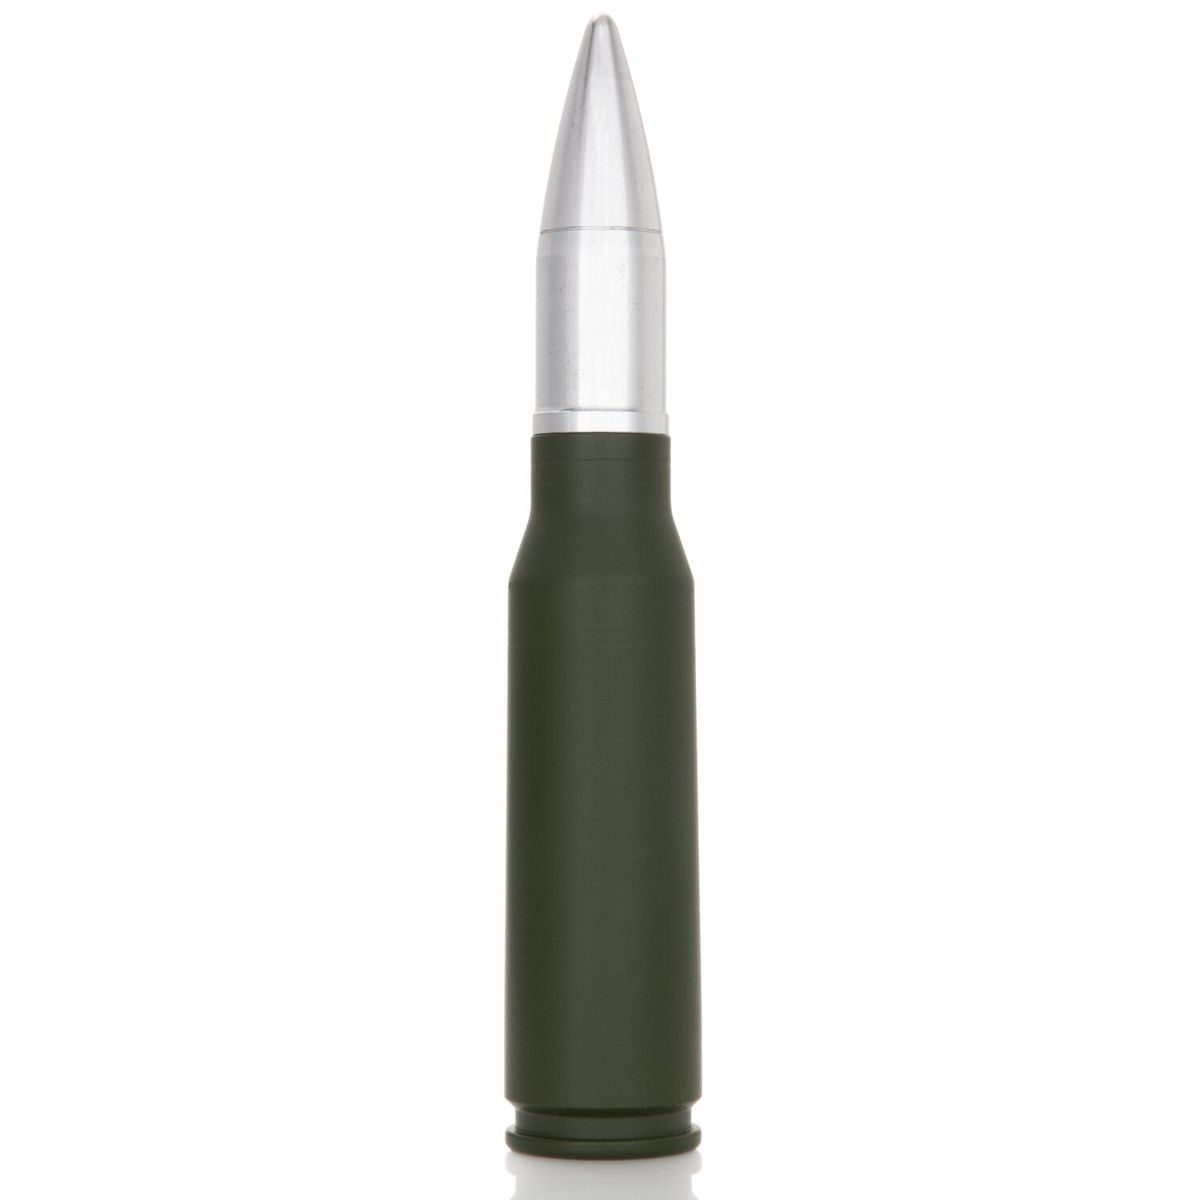 25mm Bushmaster Bottle Opener